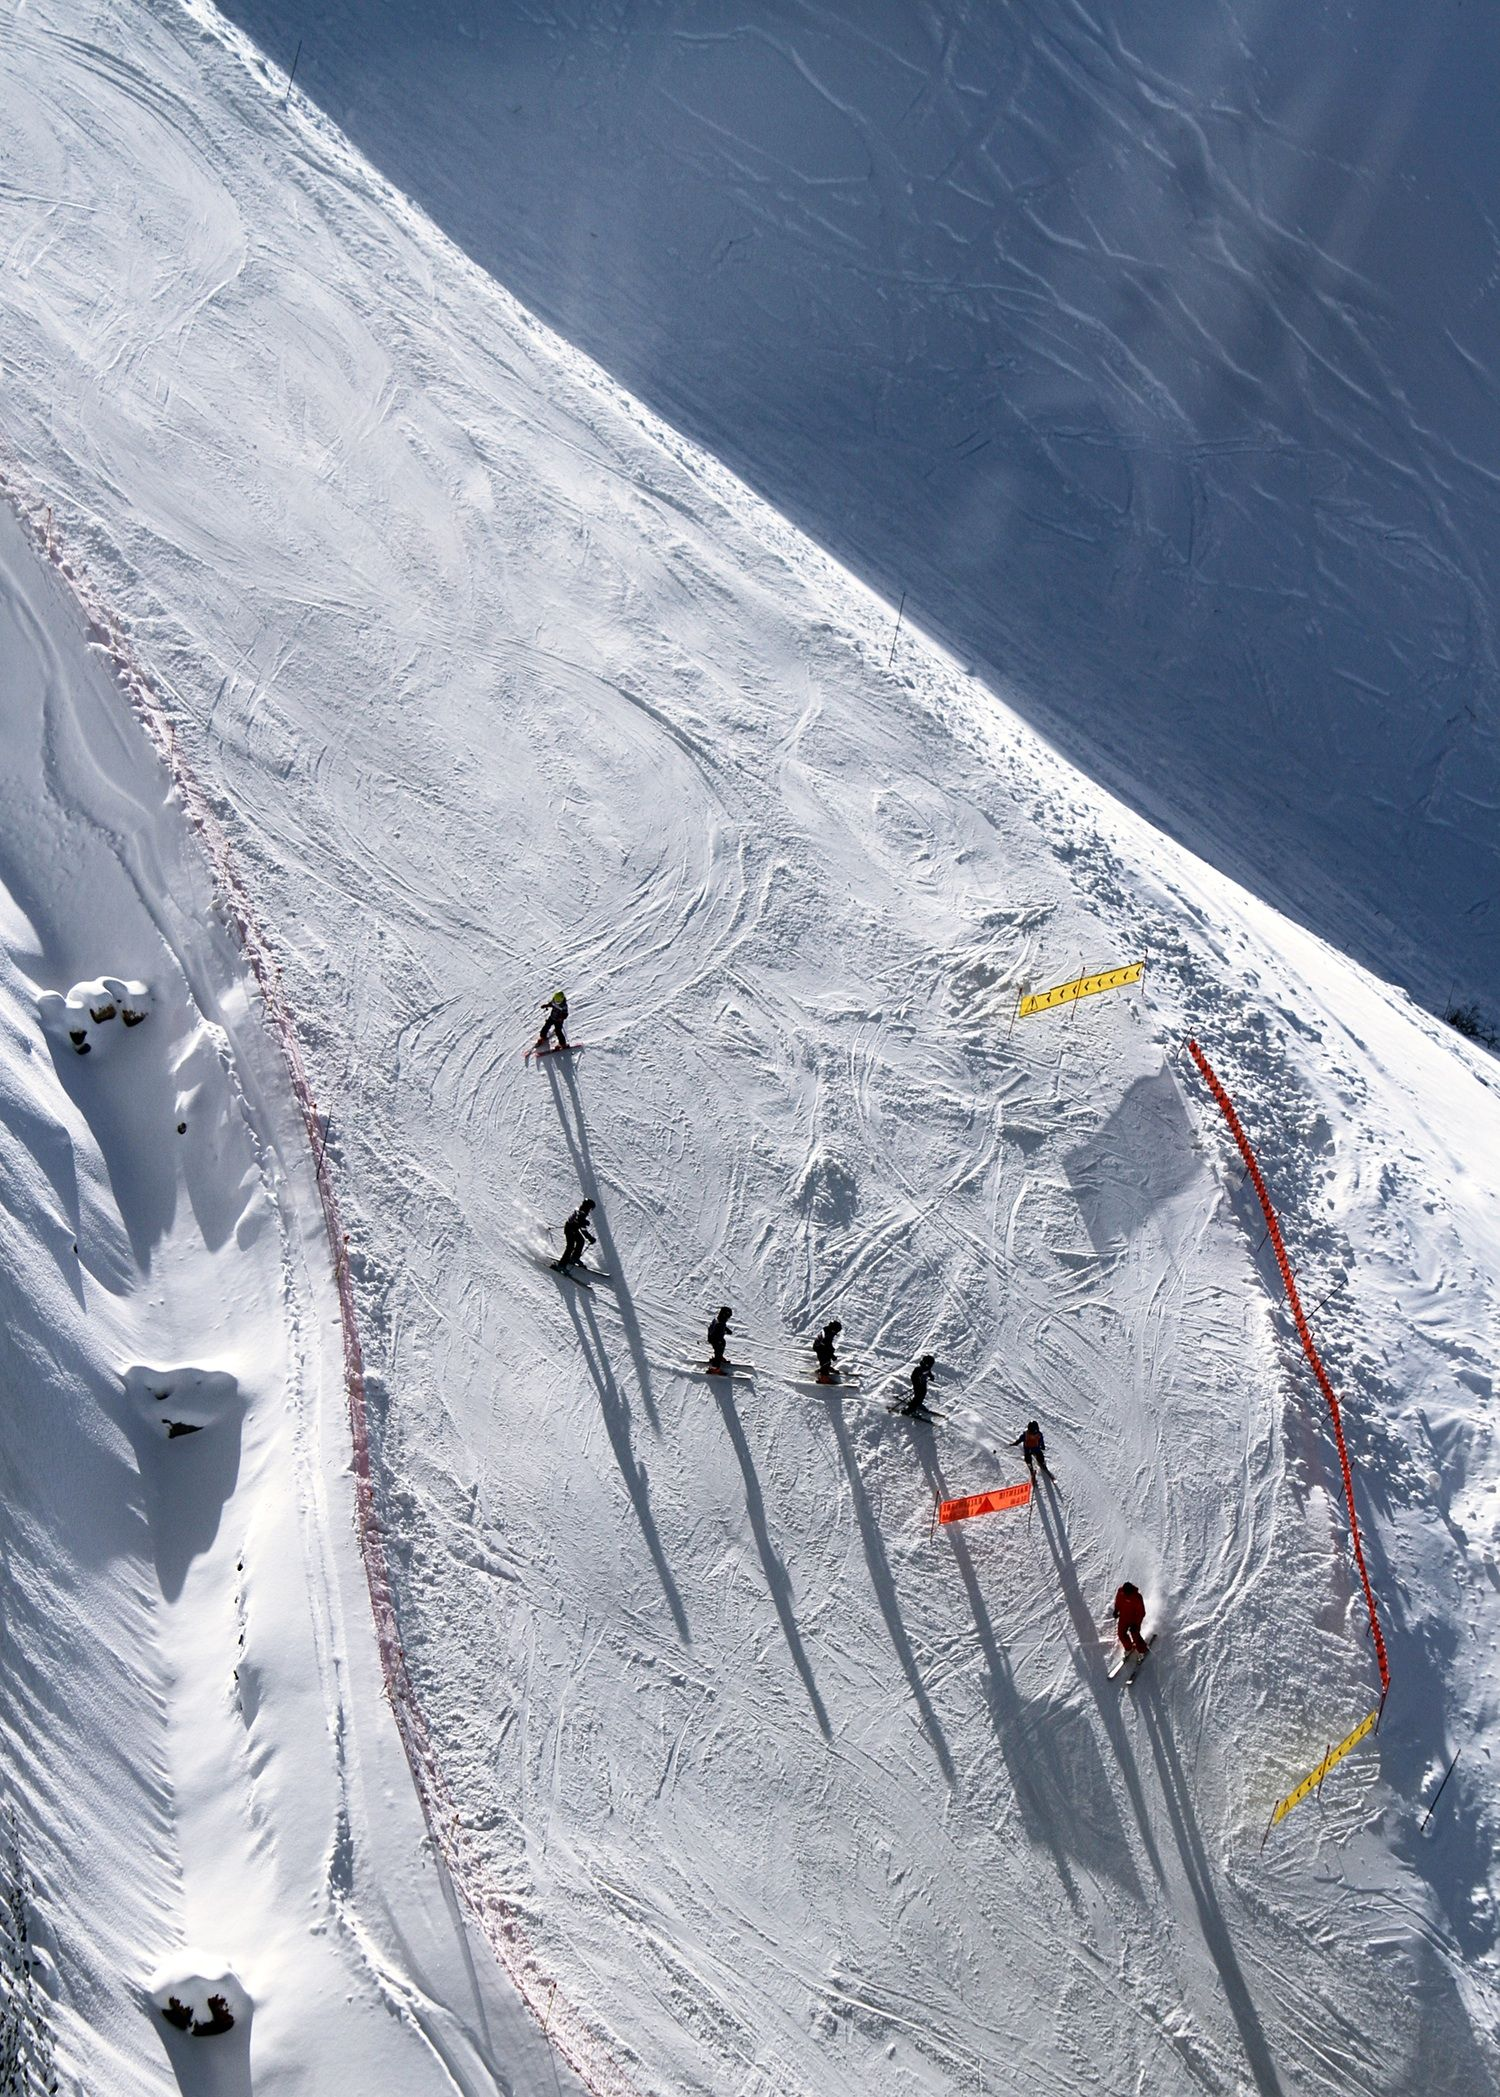 DONE Ski A Black Diamond Slope Spent Week Skiing In Vail Annually For While To Overcome Fear Of Falling Had Down